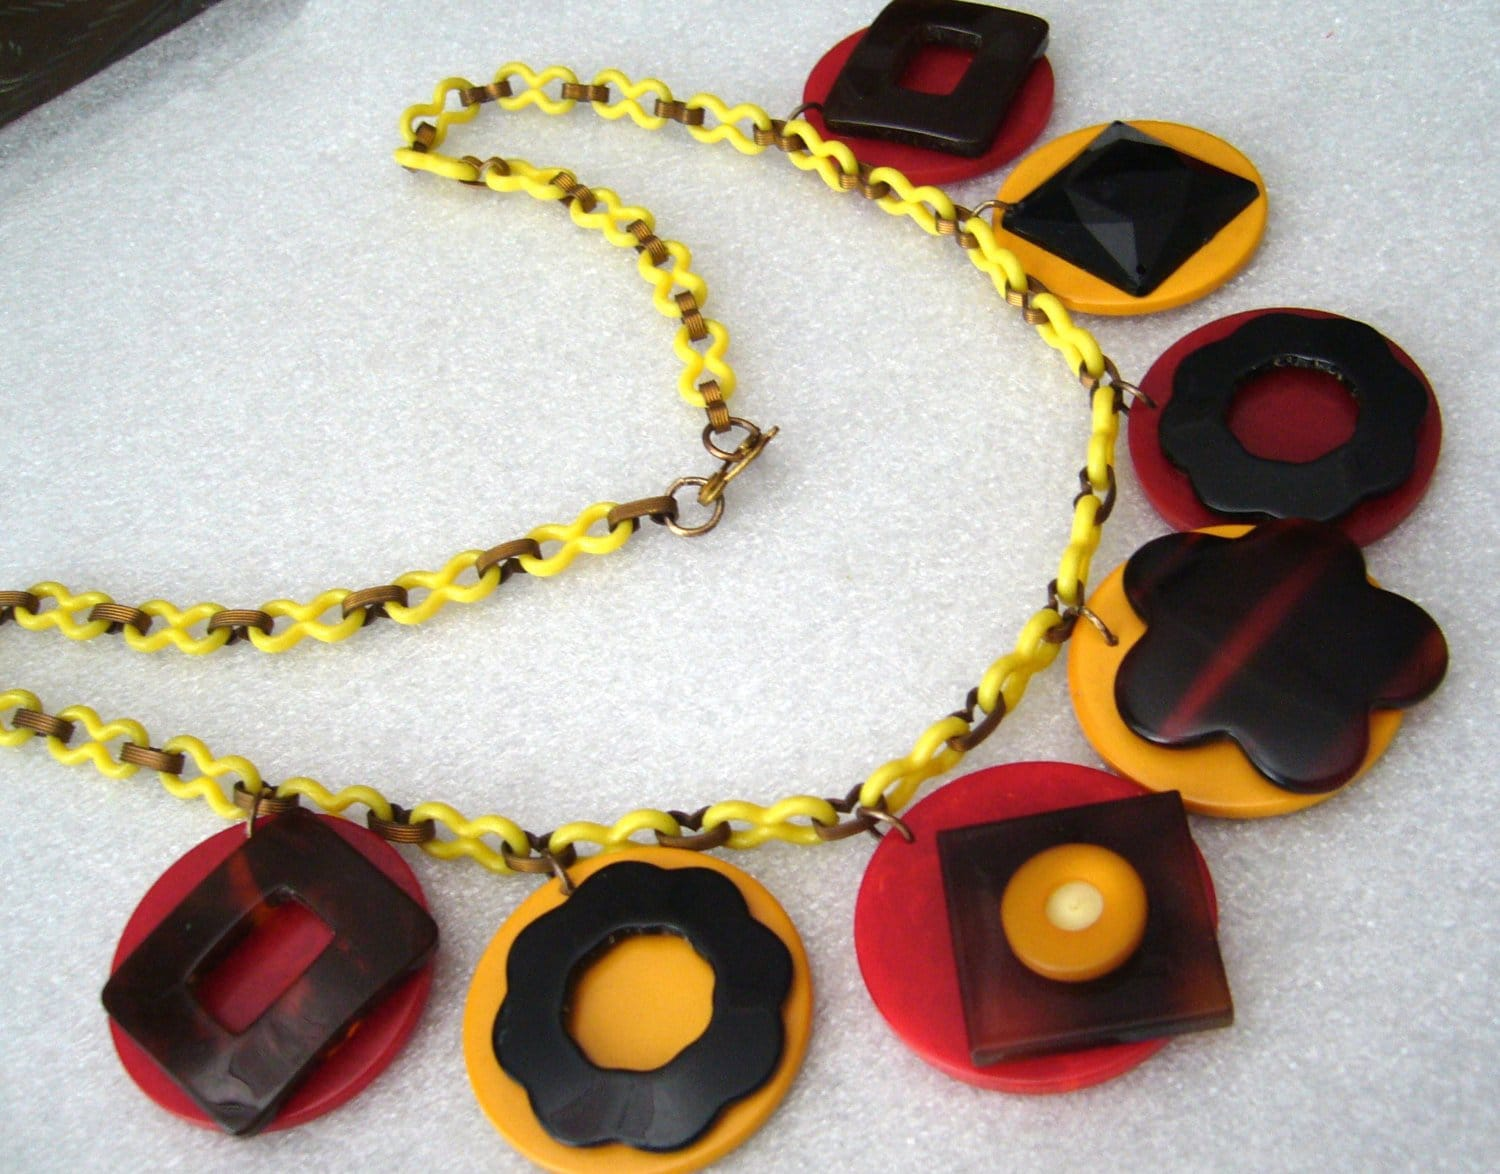 Vintage bakelite & celluloid art deco dangles necklace - bakelite era